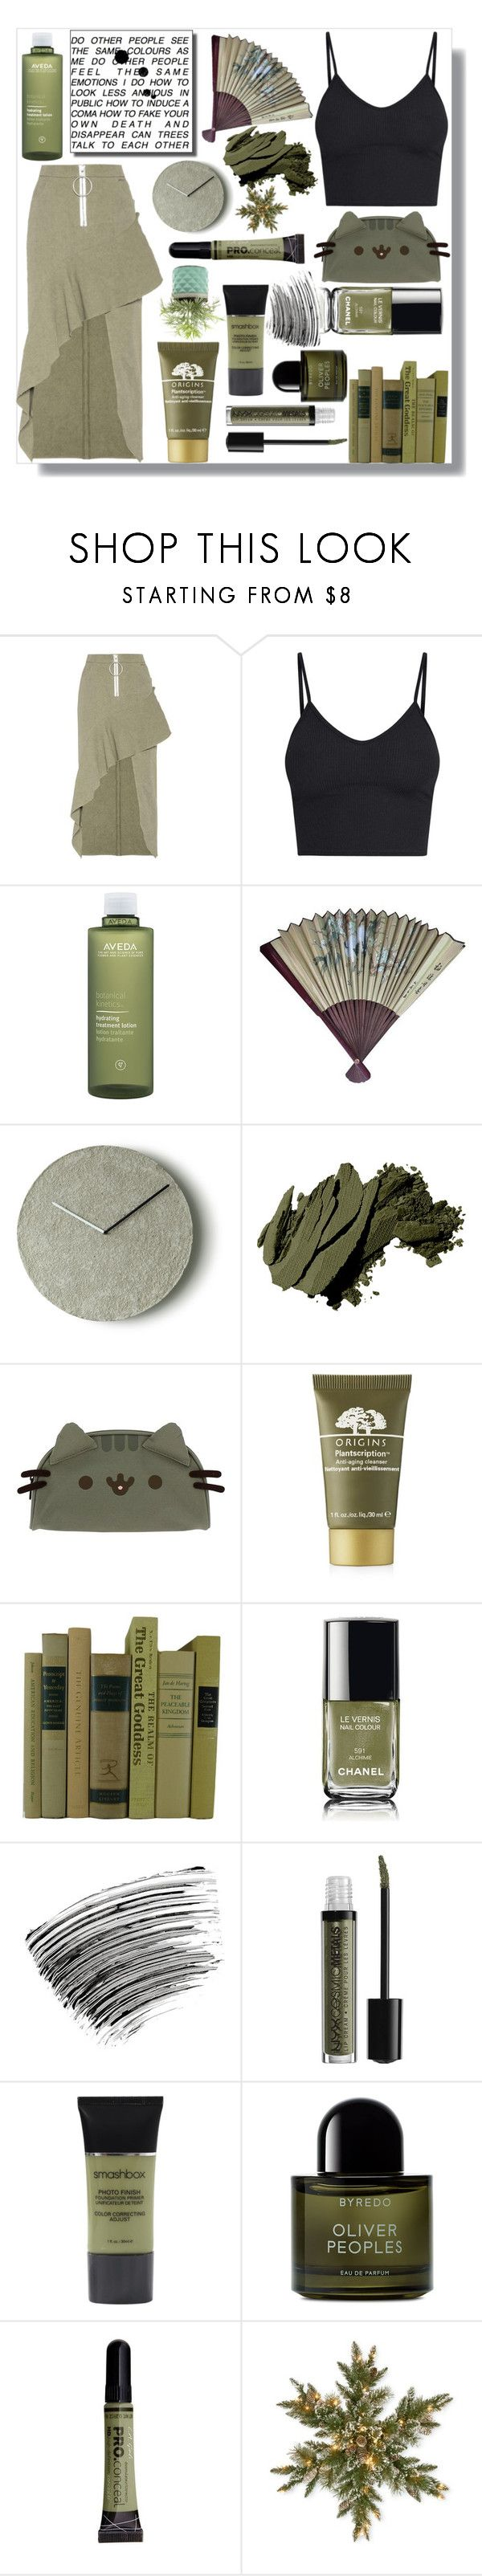 """""""Brown/Skirt - Skirt"""" by rose-chan-needs-a-life ❤ liked on Polyvore featuring Off-White, Aveda, AME, Bobbi Brown Cosmetics, Pusheen, Origins, Chanel, NYX, Smashbox and Byredo"""